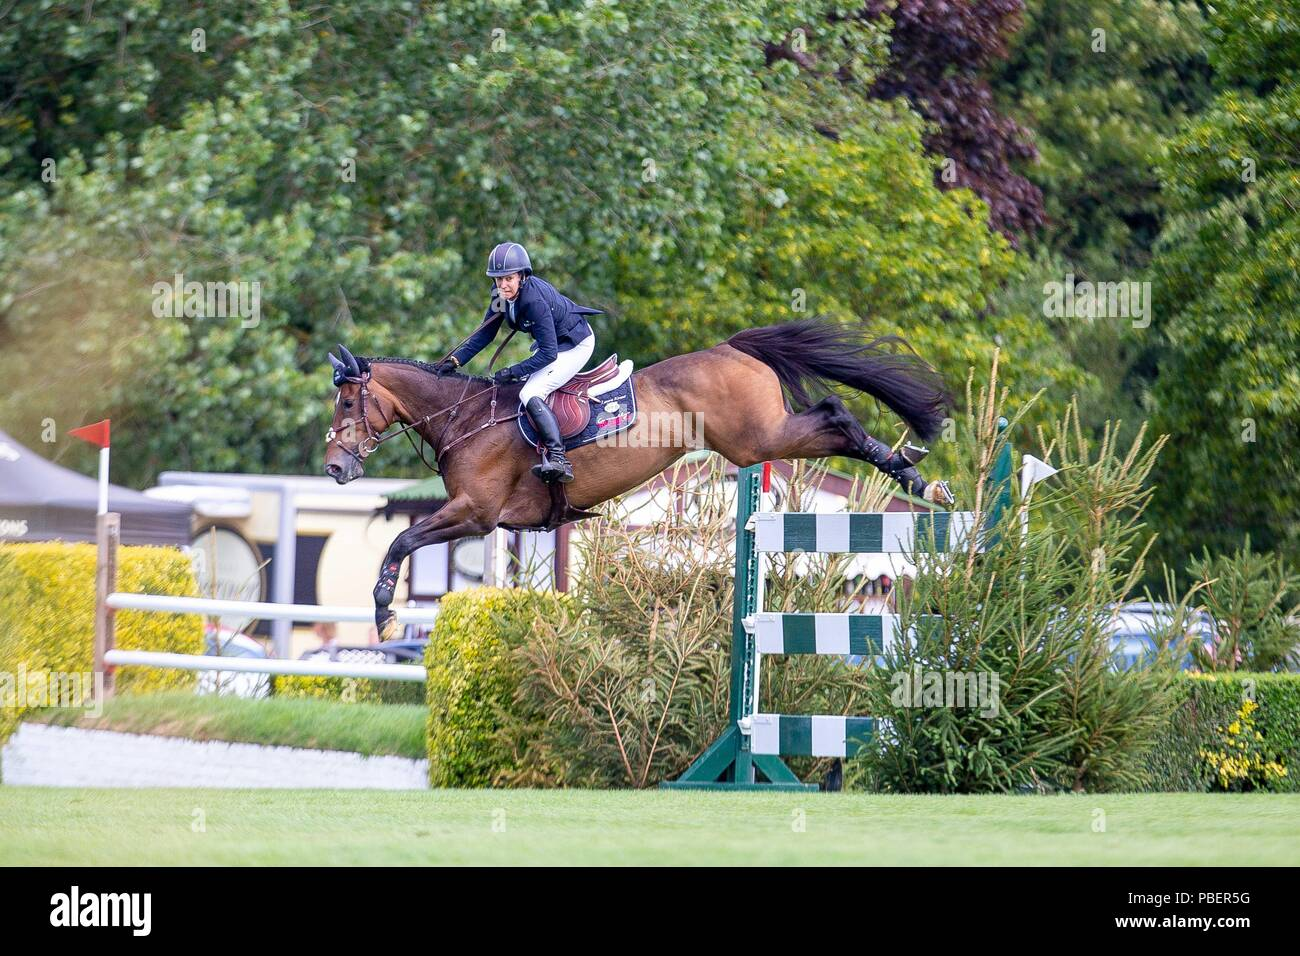 Sussex, UK. 28th July 2018. Winner. Laura Kraut riding Nouvelle. USA. The Bunn Lesiure Salver. Jump off. Showjumping. Longines FEI Jumping Nations Cup of Great Britain at the BHS Royal International Horse Show. All England Jumping Course. Hickstead. Great Britain. 28/07/2018. Credit: Sport In Pictures/Alamy Live News - Stock Image